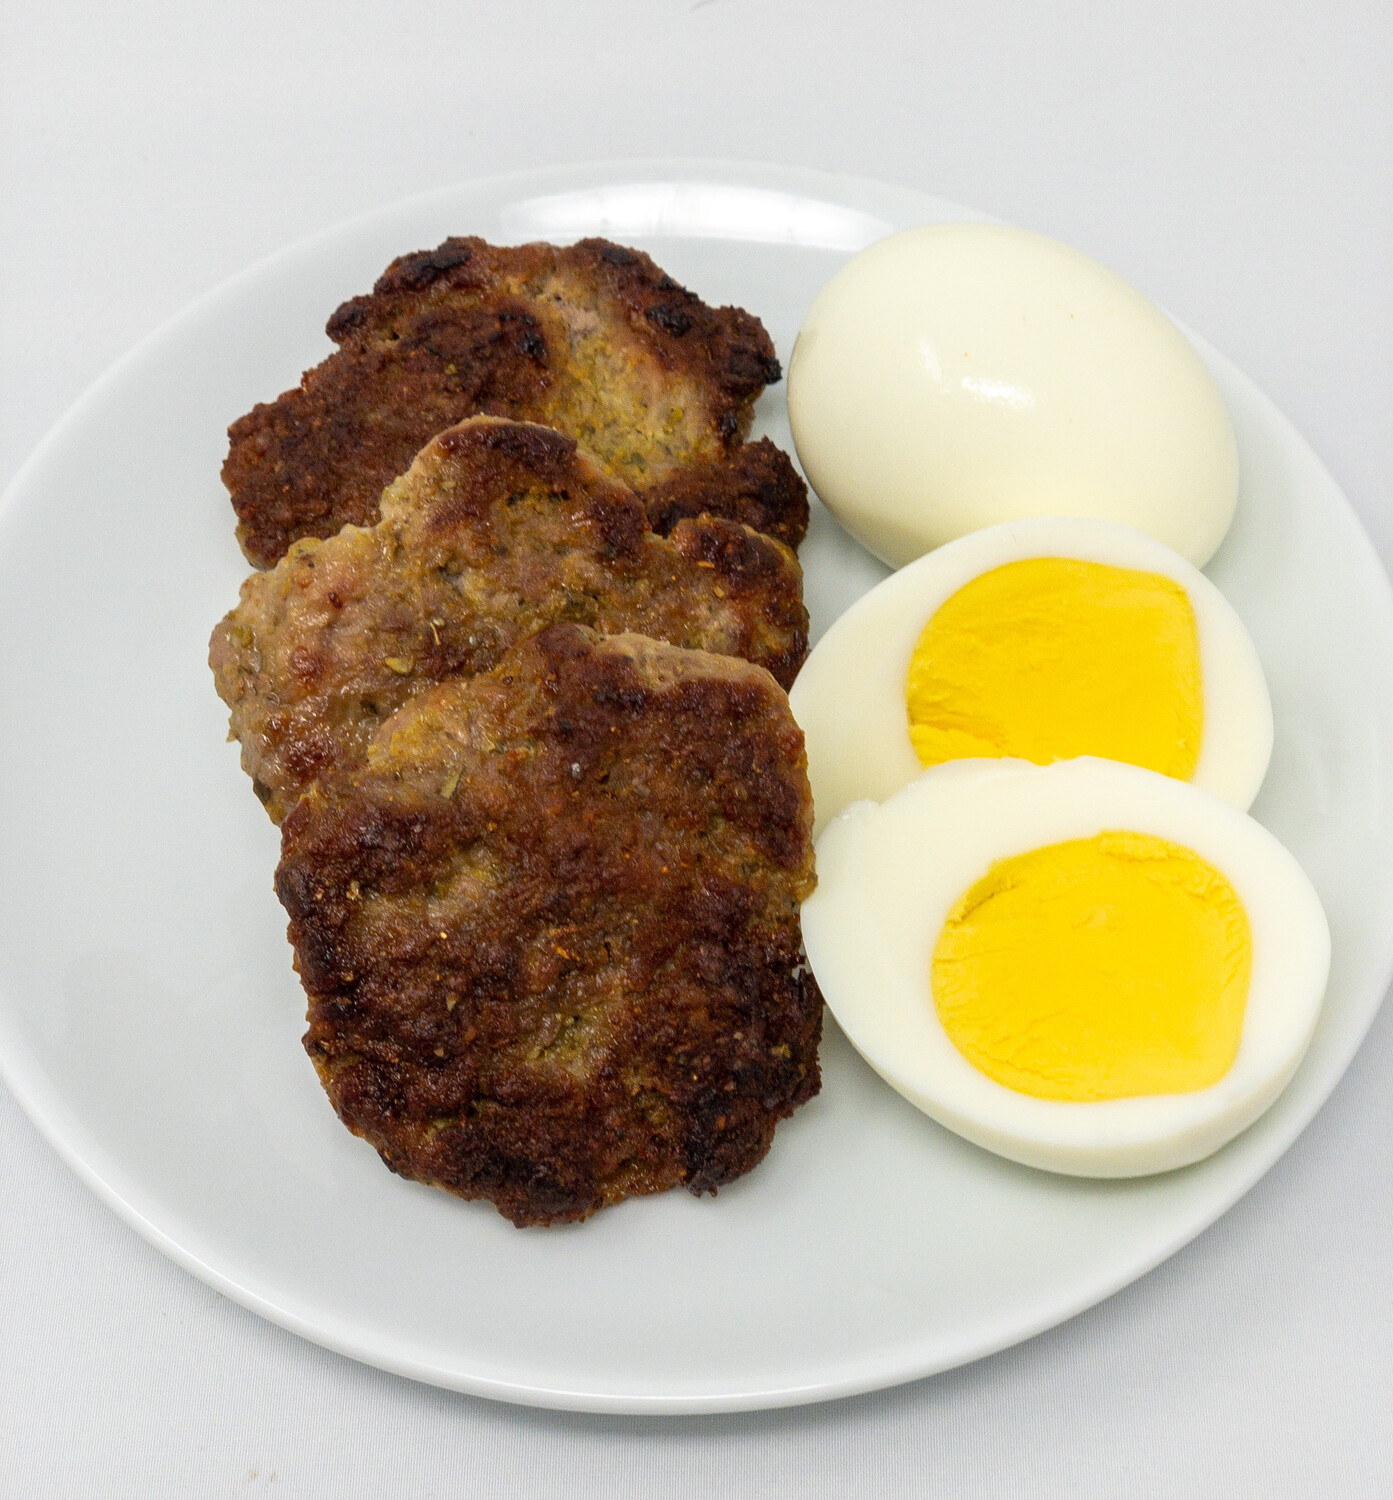 Breakfast Sausage Patties With Hard boiled Eggs